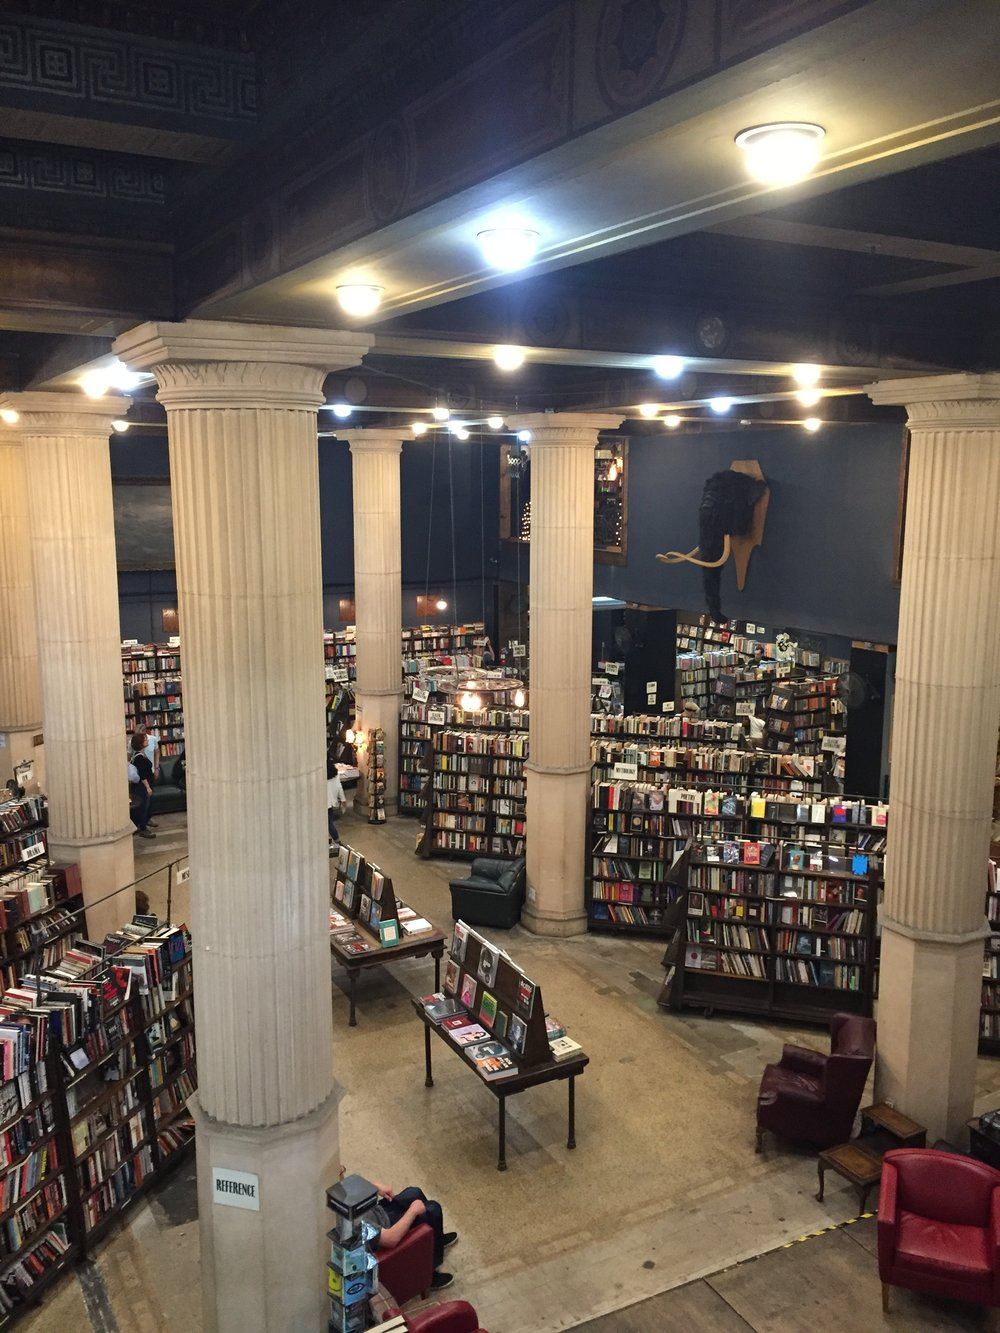 [image description: Another view of the lower floor of the bookstore as seen from the balcony. There are fluted columns from floor to ceiling, rows of bookshelves and tables full of books, and a number of red leather chairs, some of which have customers resting in them. There's a large taxidermic elephant head on the wall, which I hope is fake.]